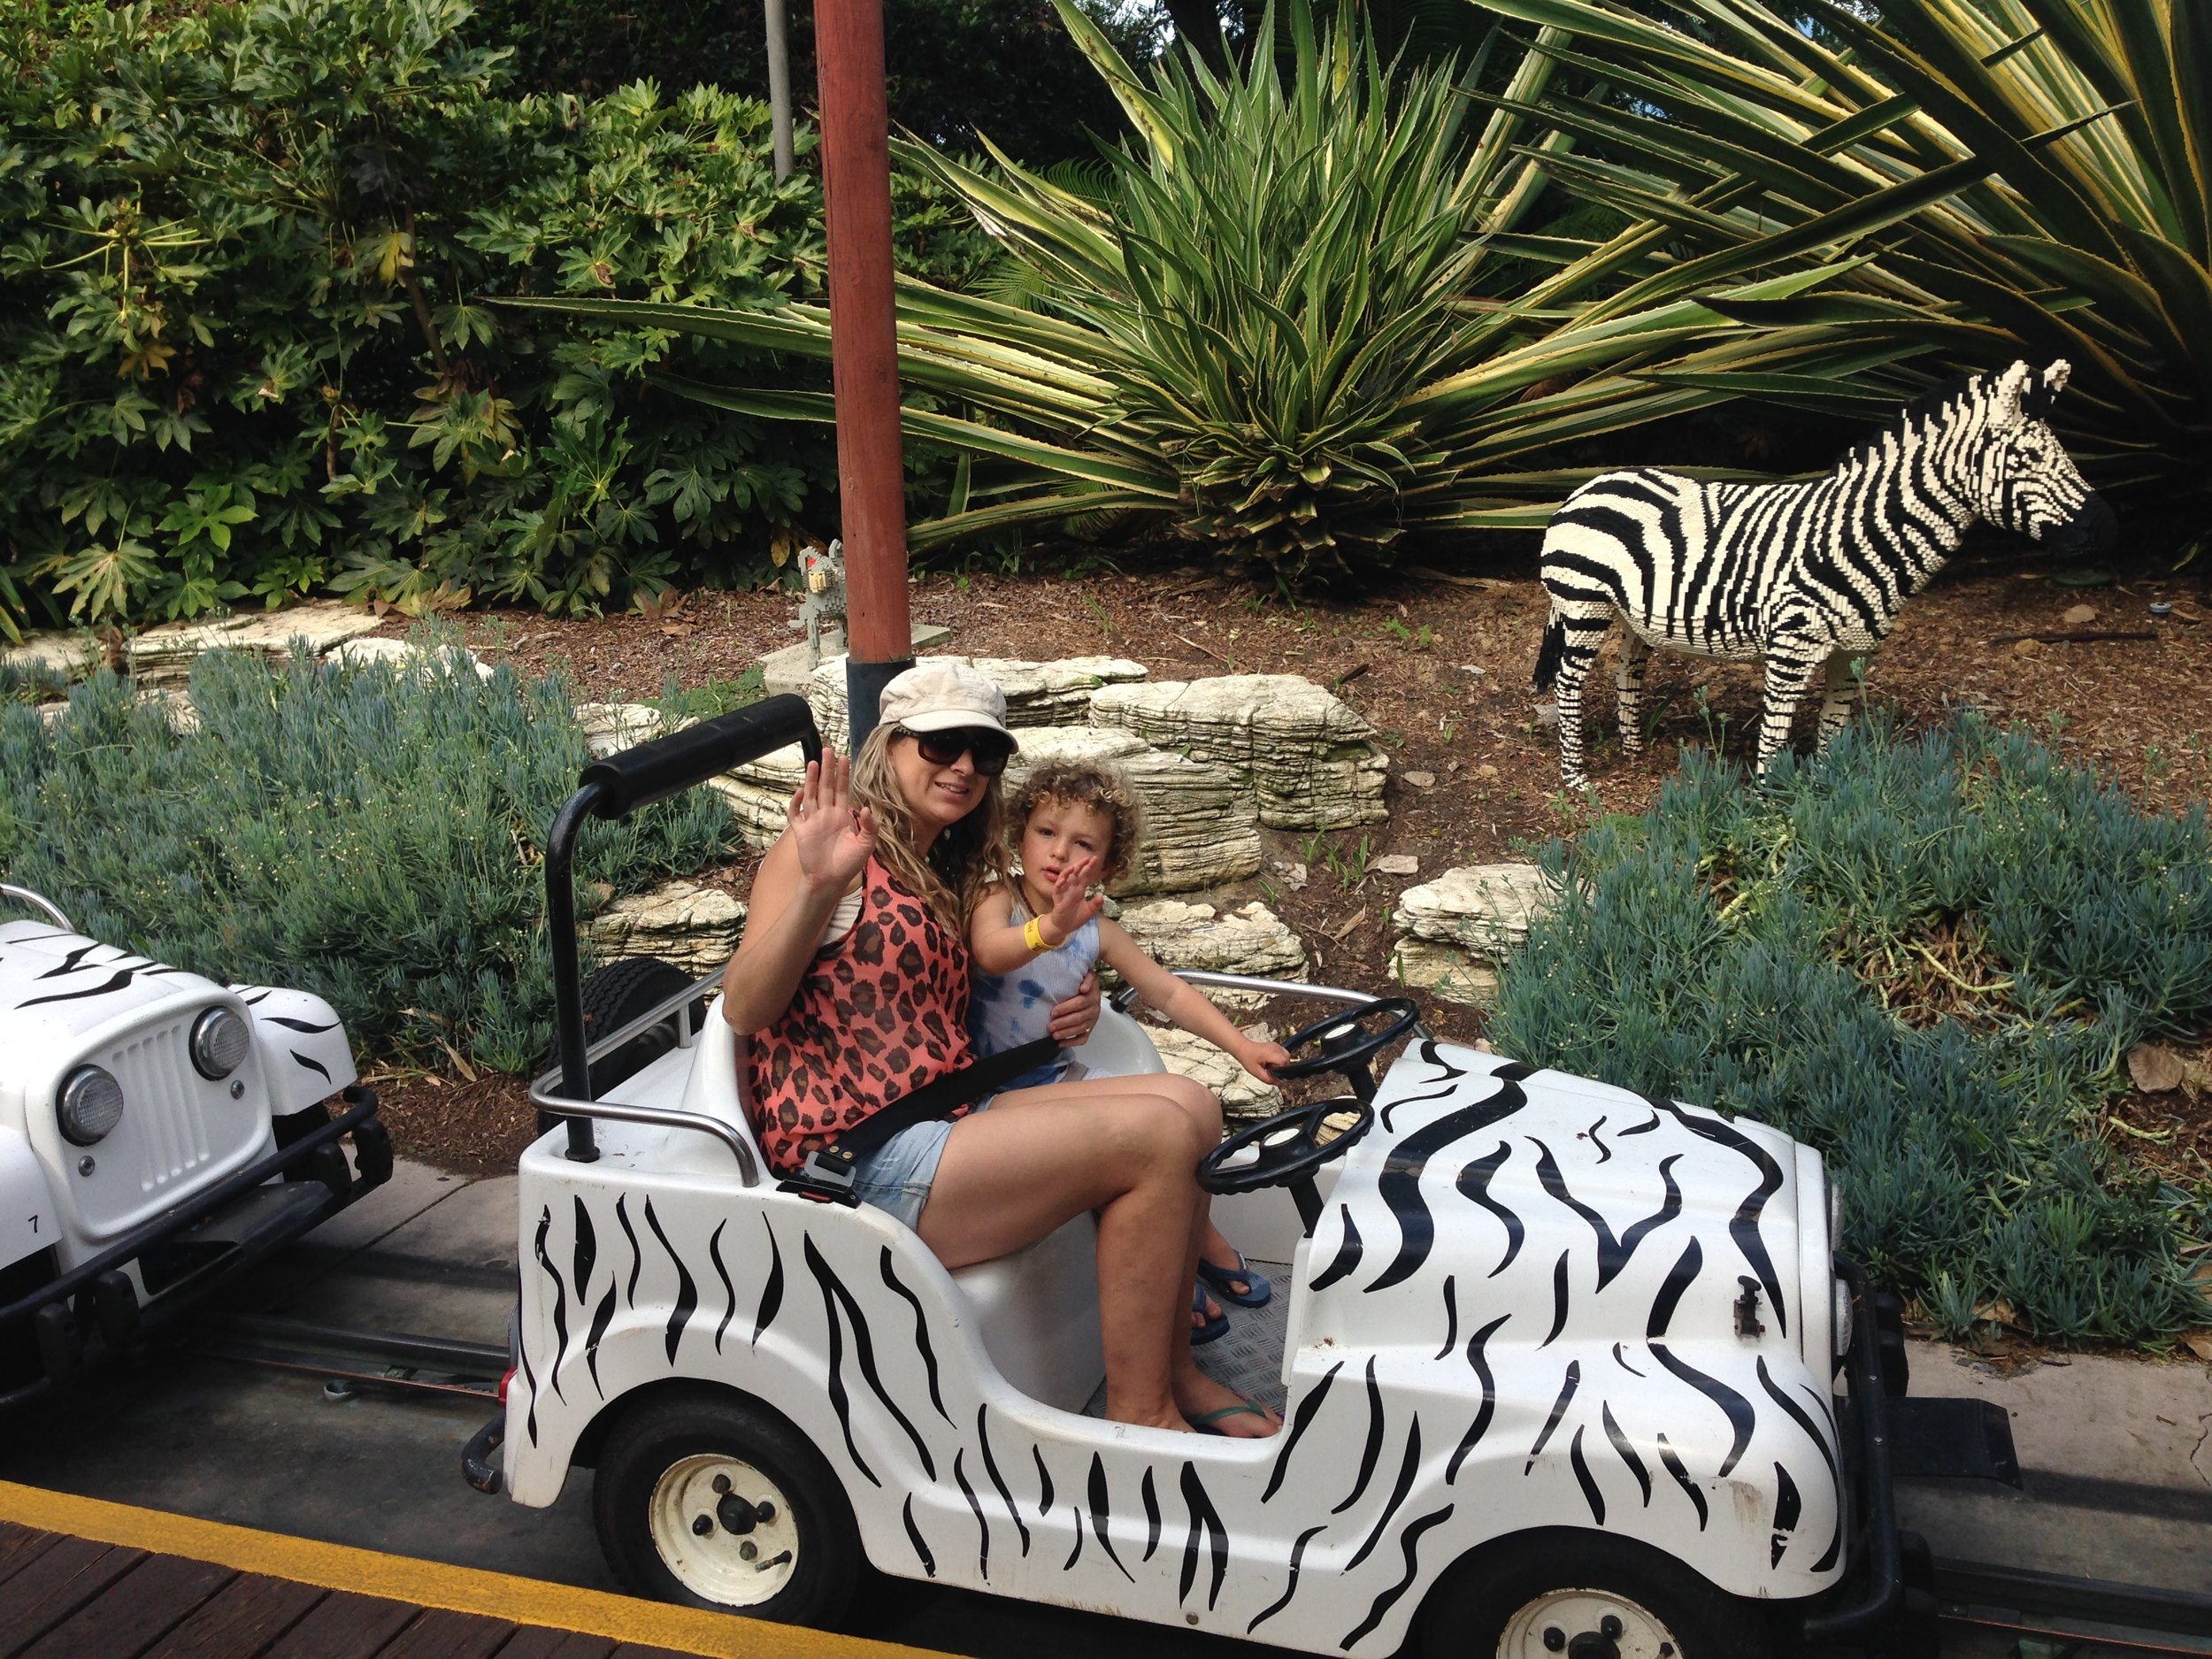 The Safari Trek ride with it's life sized Lego animals was a hit with Bodie